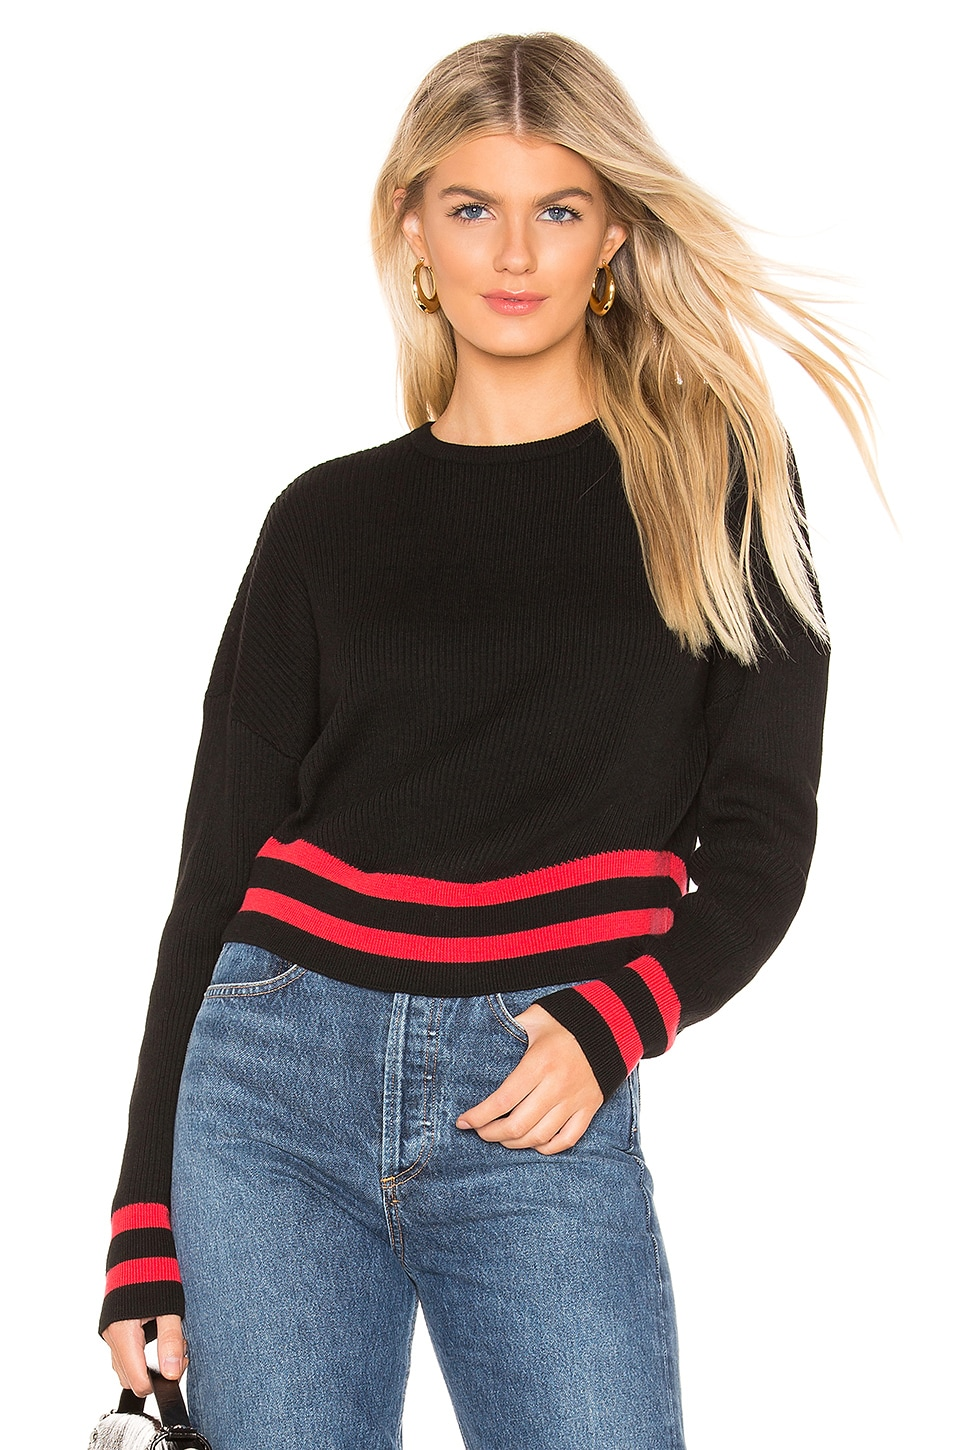 L'Academie No Limits Sweater in Black & Red